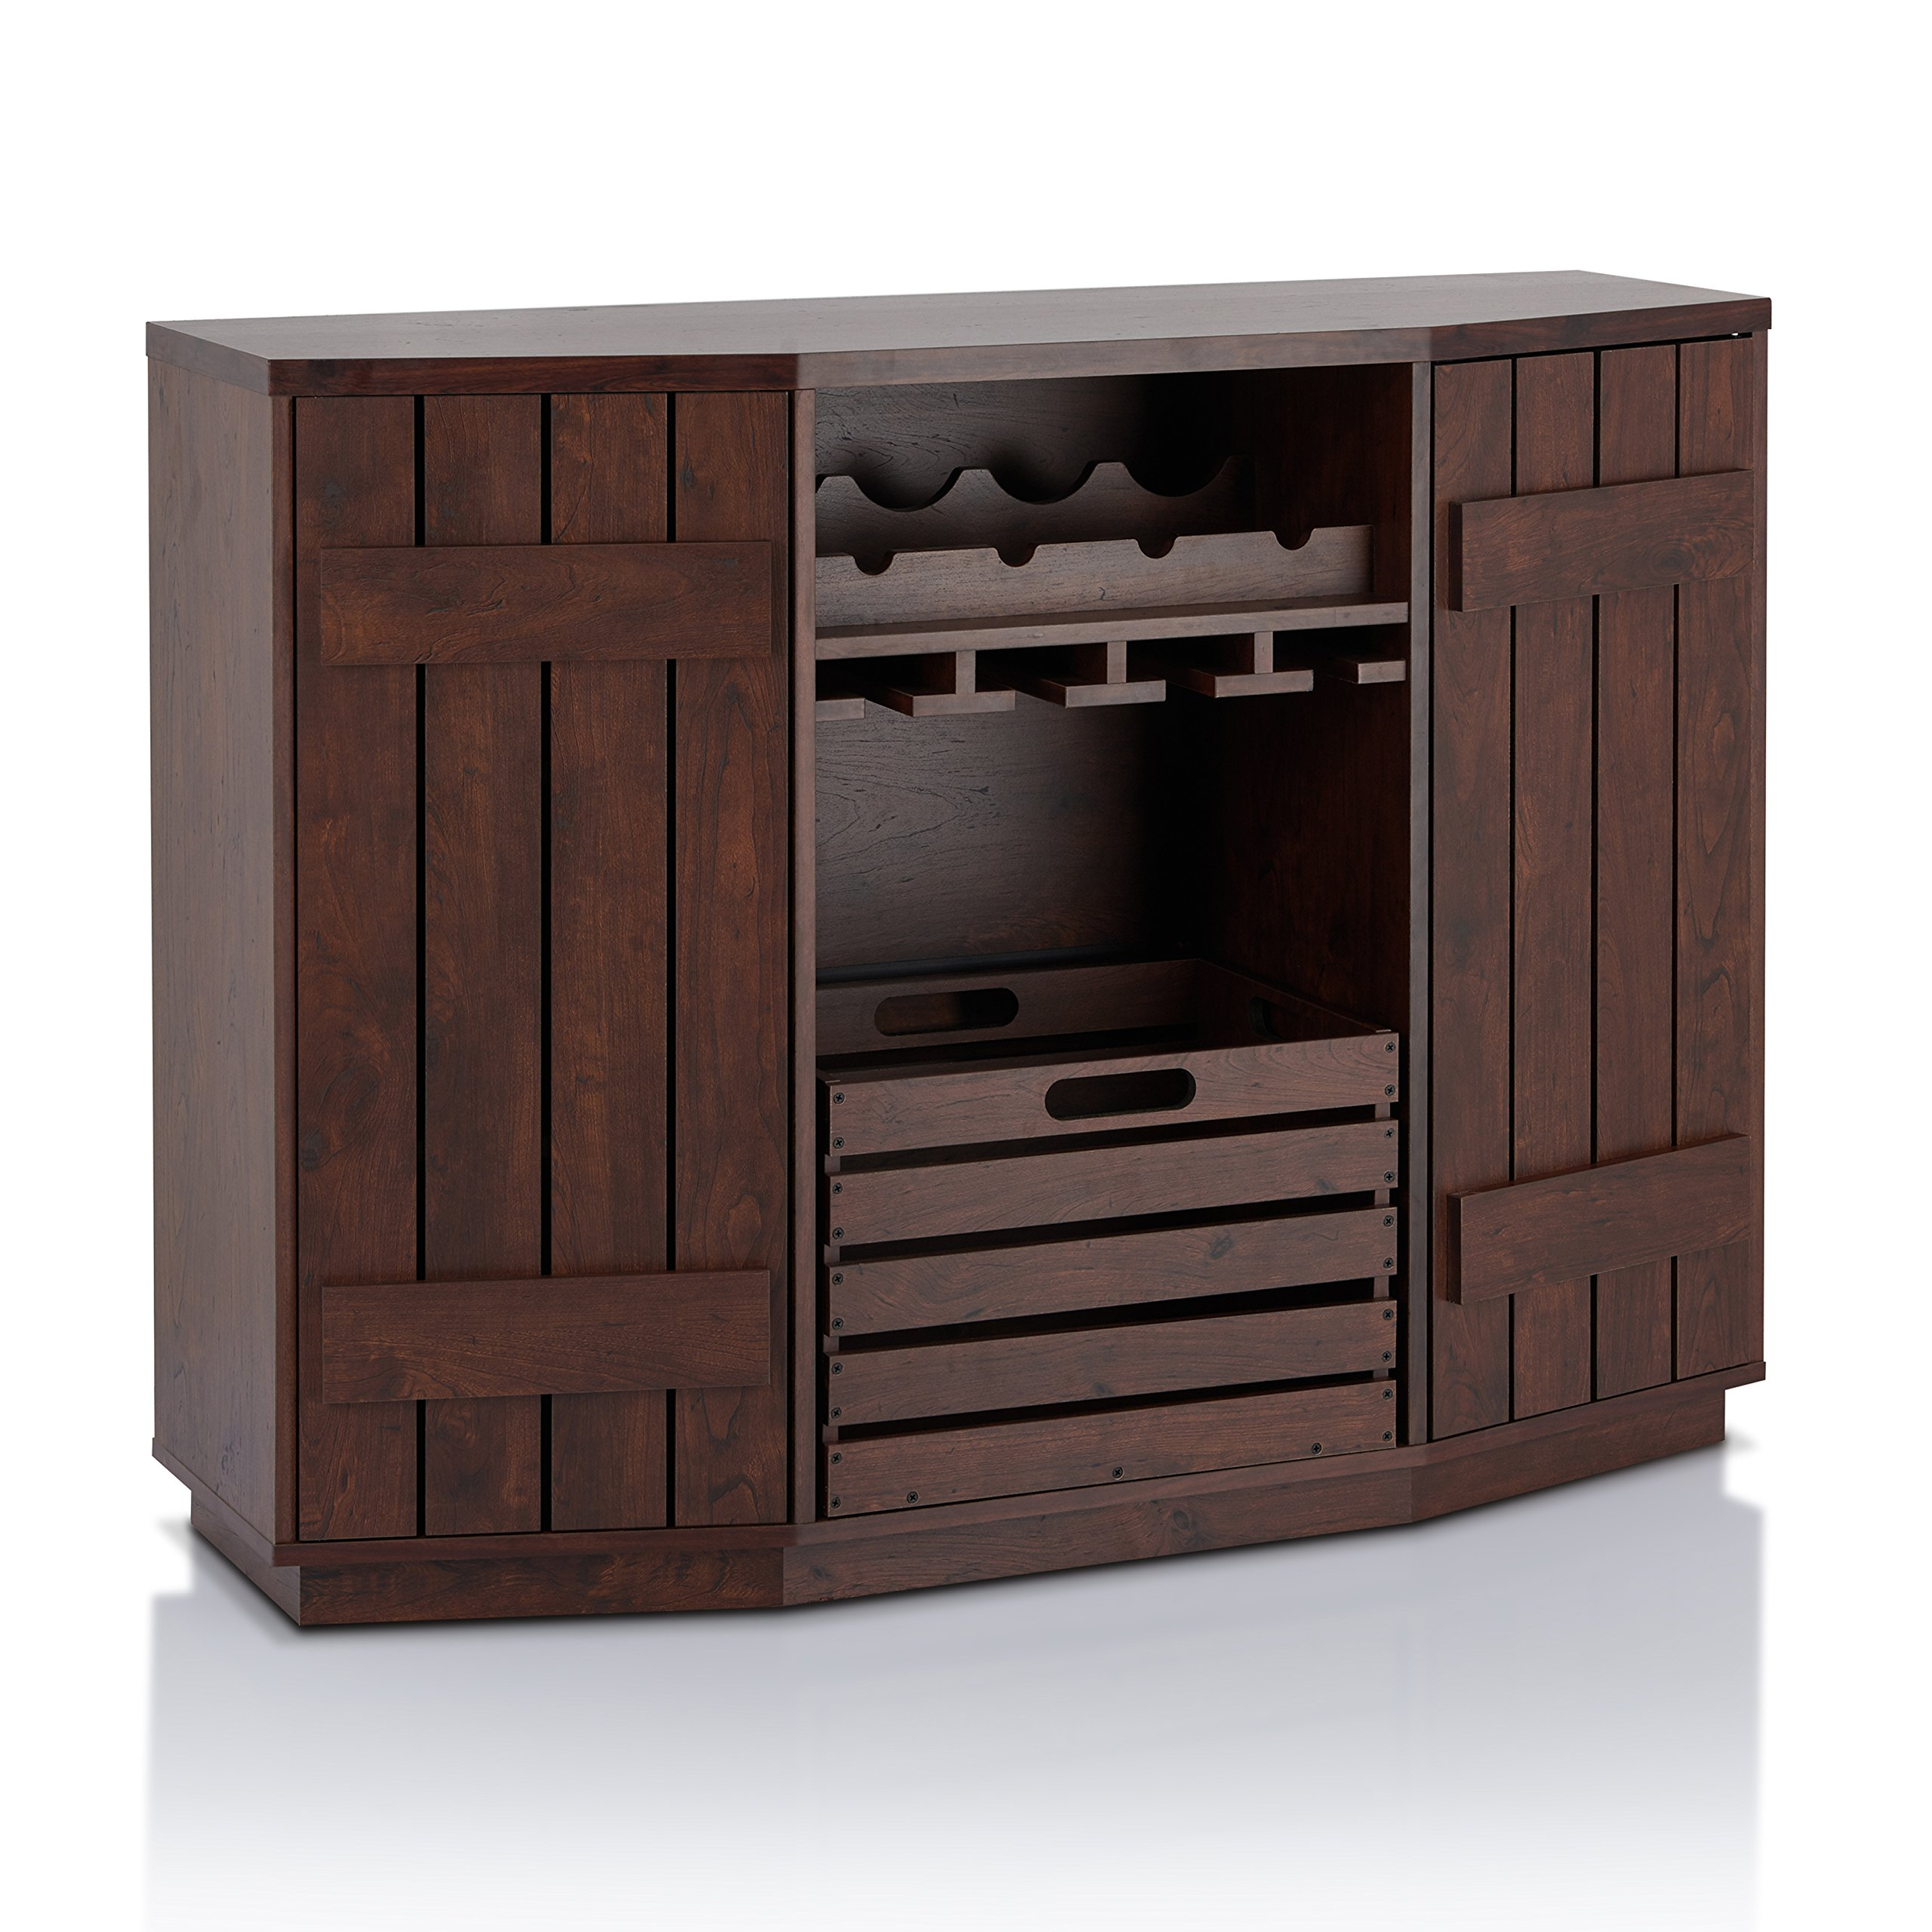 HOMES: Inside + Out YNJ-1572C6 Buffet Server, Vintage Walnut by HOMES: Inside + Out